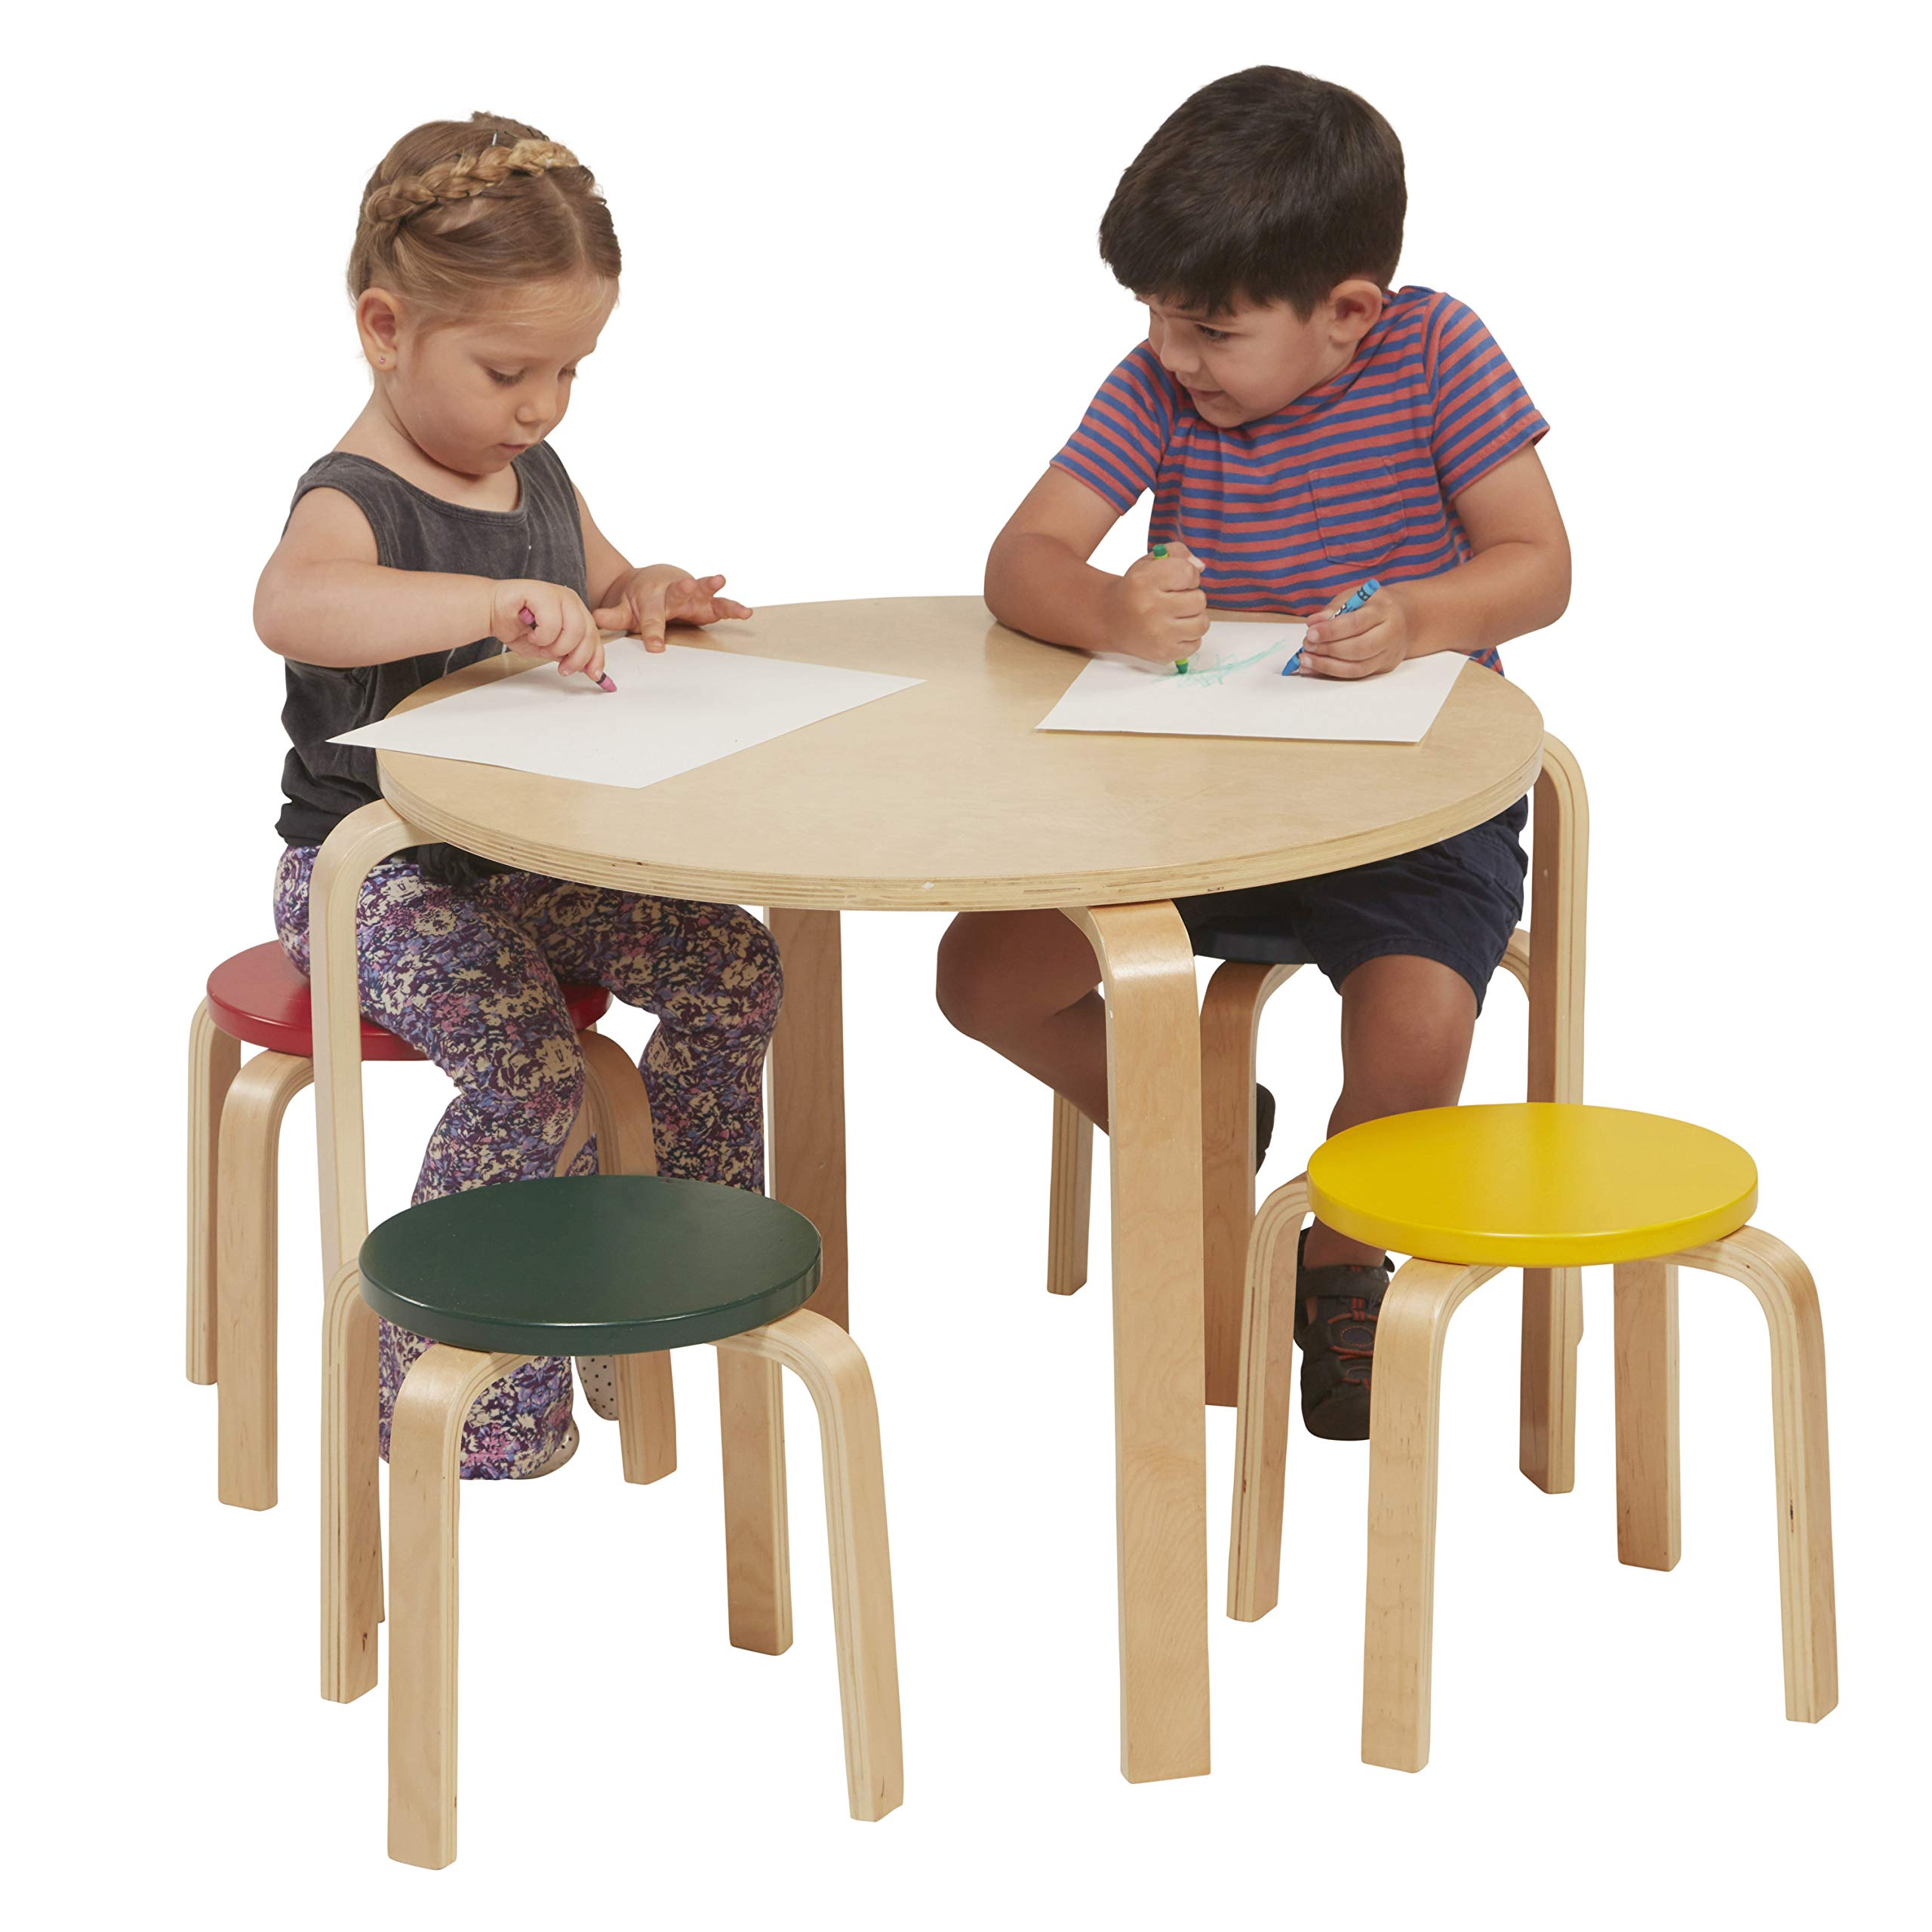 ECR4Kids Bentwood Table and Stool Set for Kids, Assorted by ECR4Kids